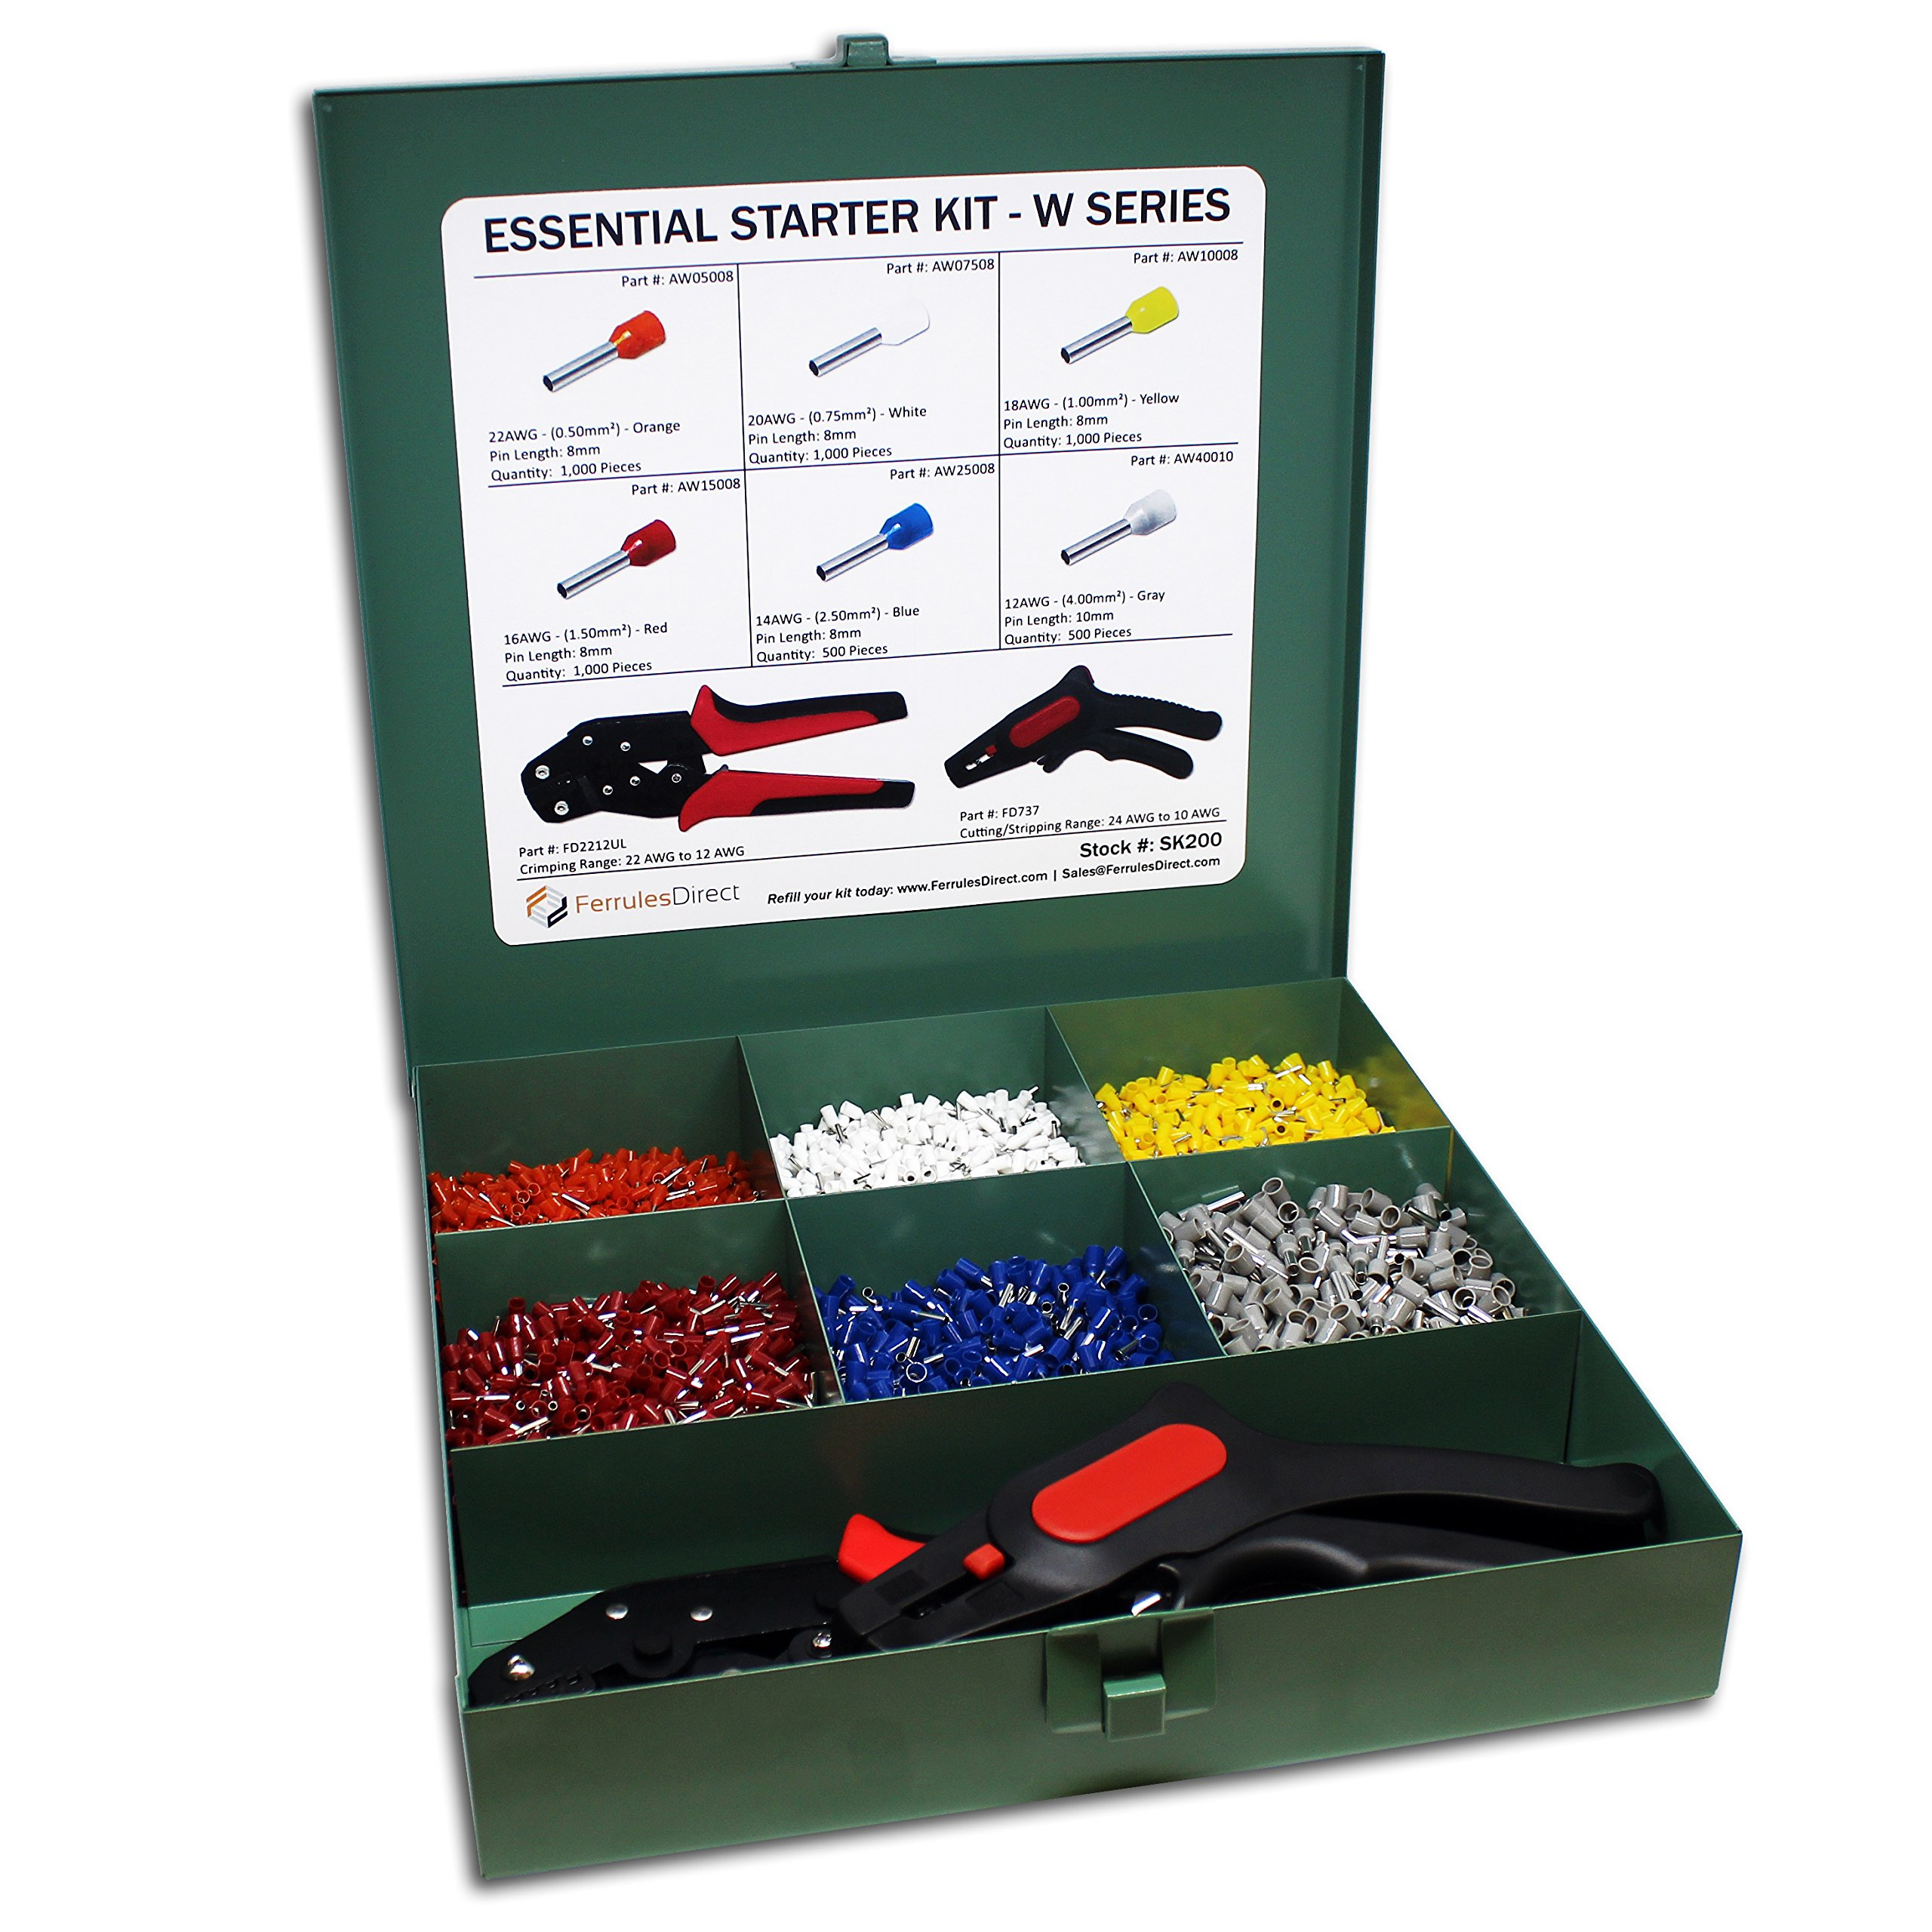 5000 Piece Wire Ferrules Essential Kit with Trapezoidal Profile Crimping Tool and Cutting/Stripping Tool-22 AWG to 12 AWG Insulated Connectors-SK200